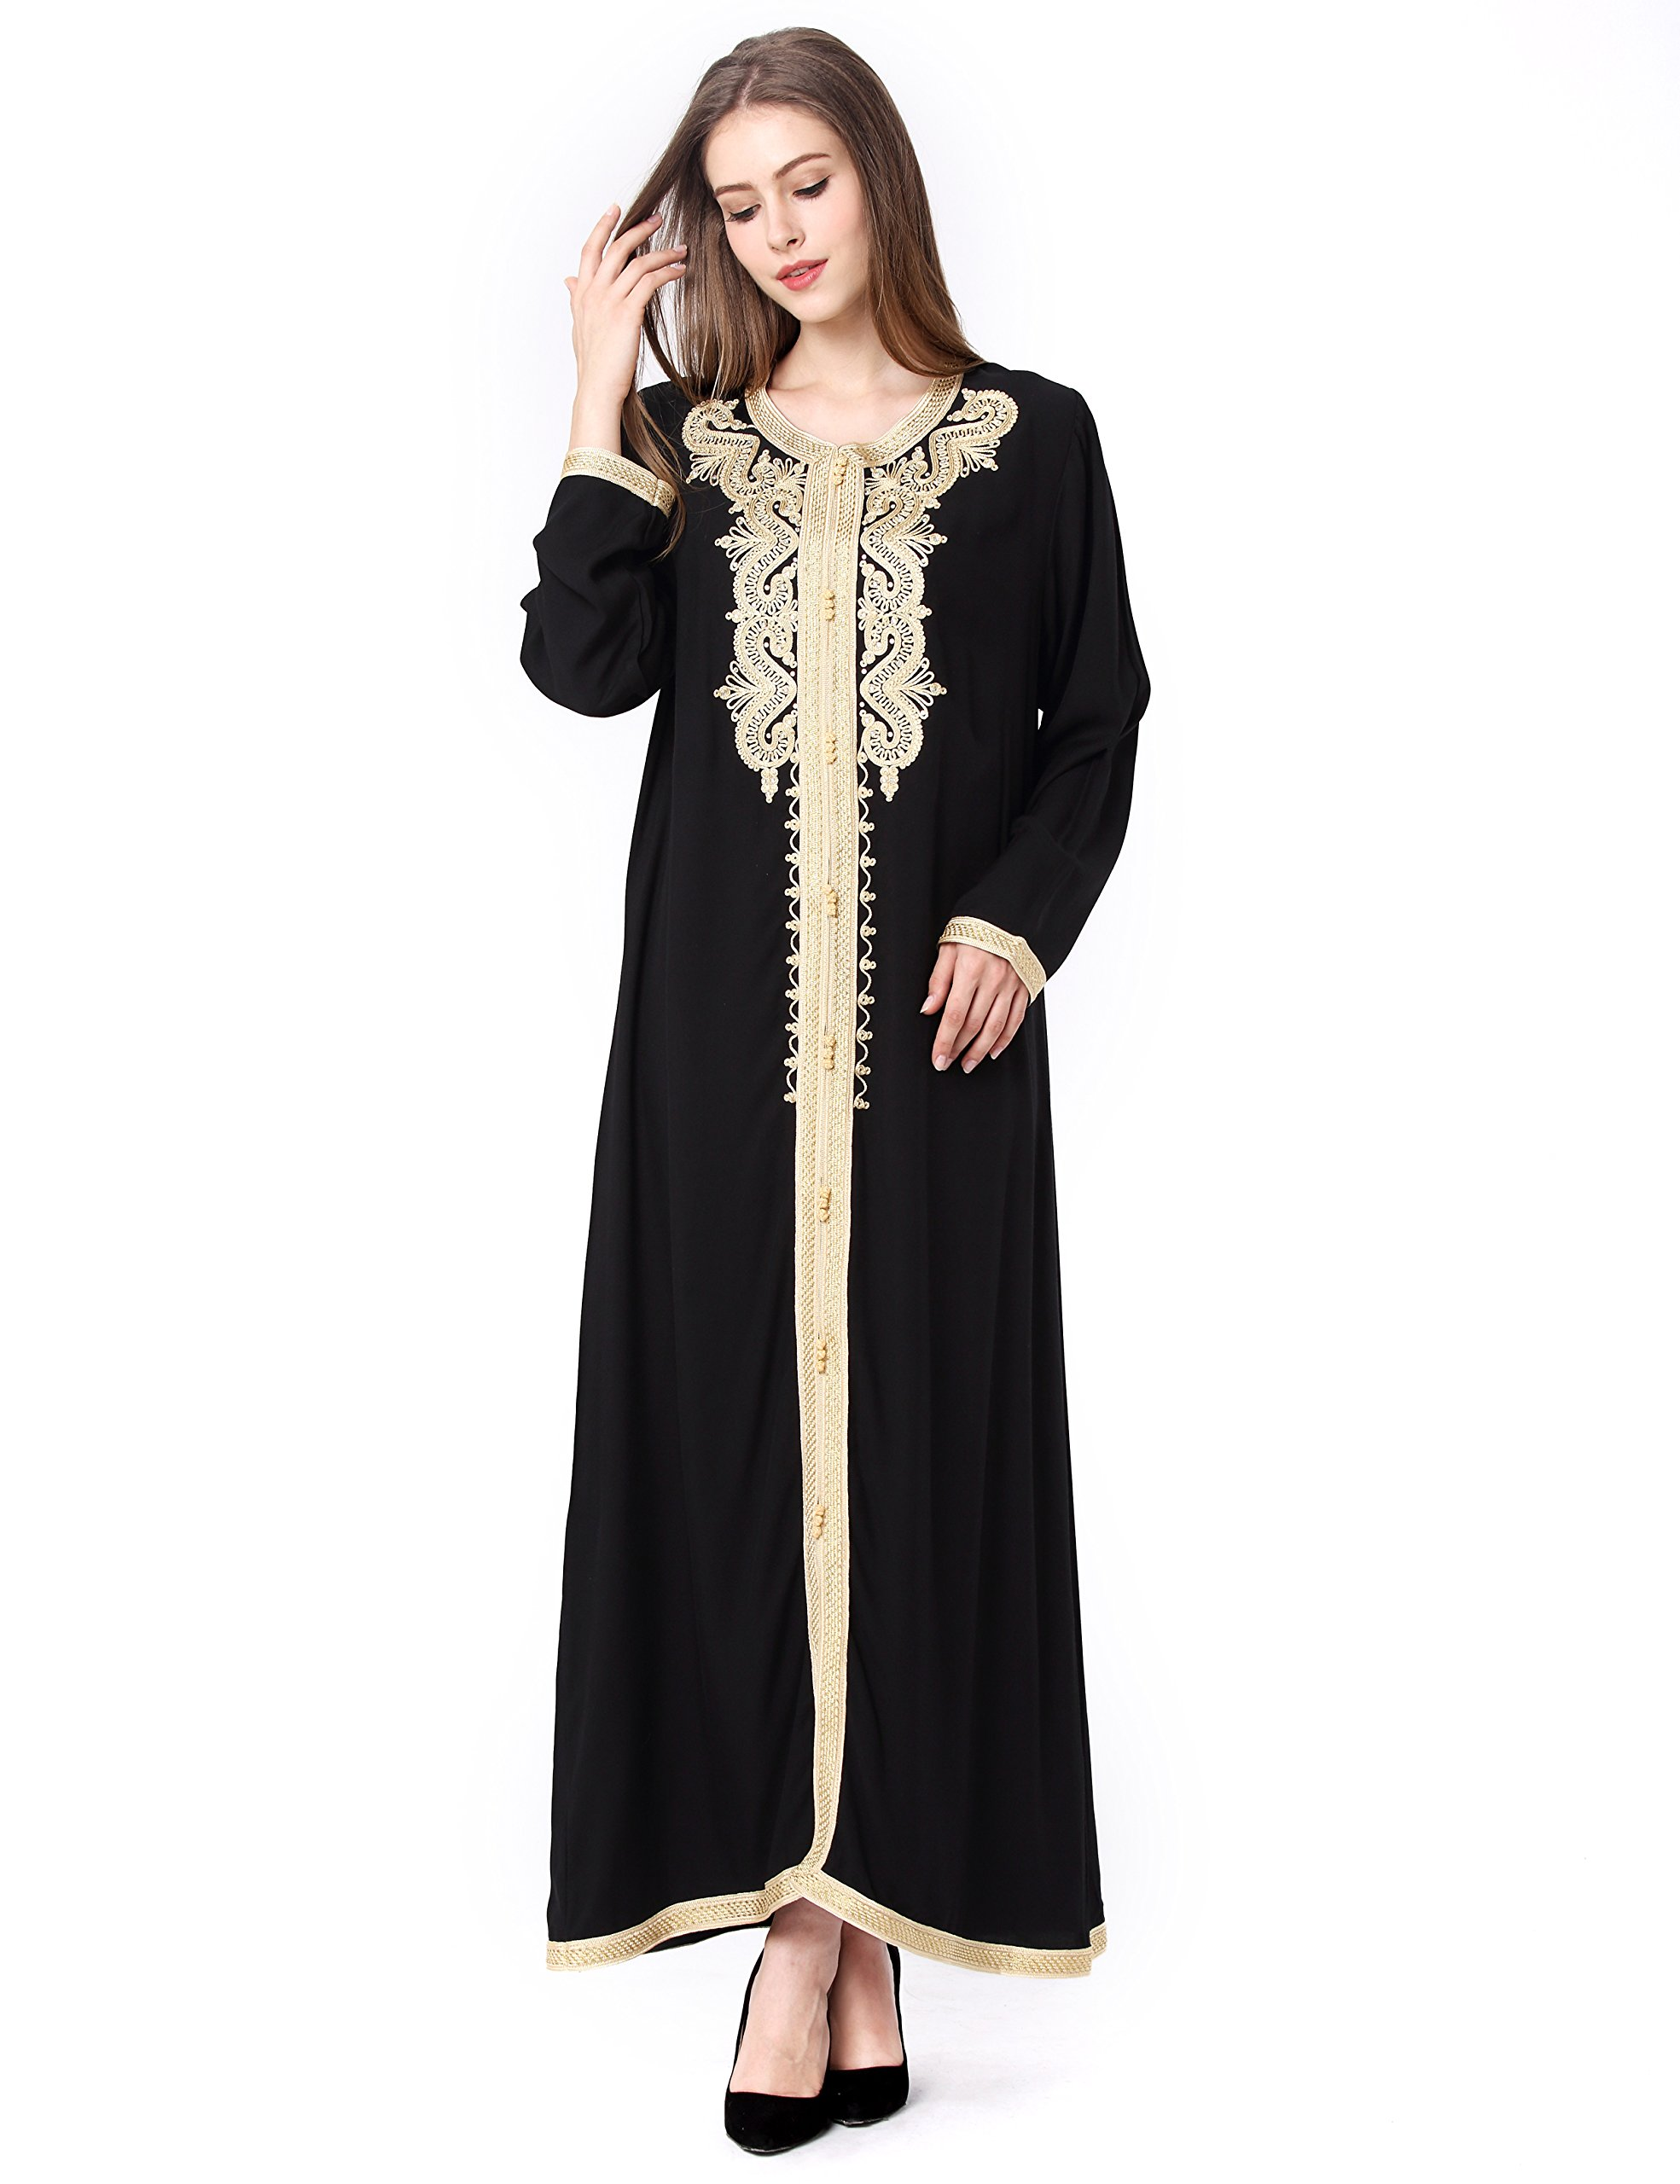 Muslim kaftan dubai long sleeve dress with embroidery for women Islamic clothing gown abaya for girls, Black, Medium